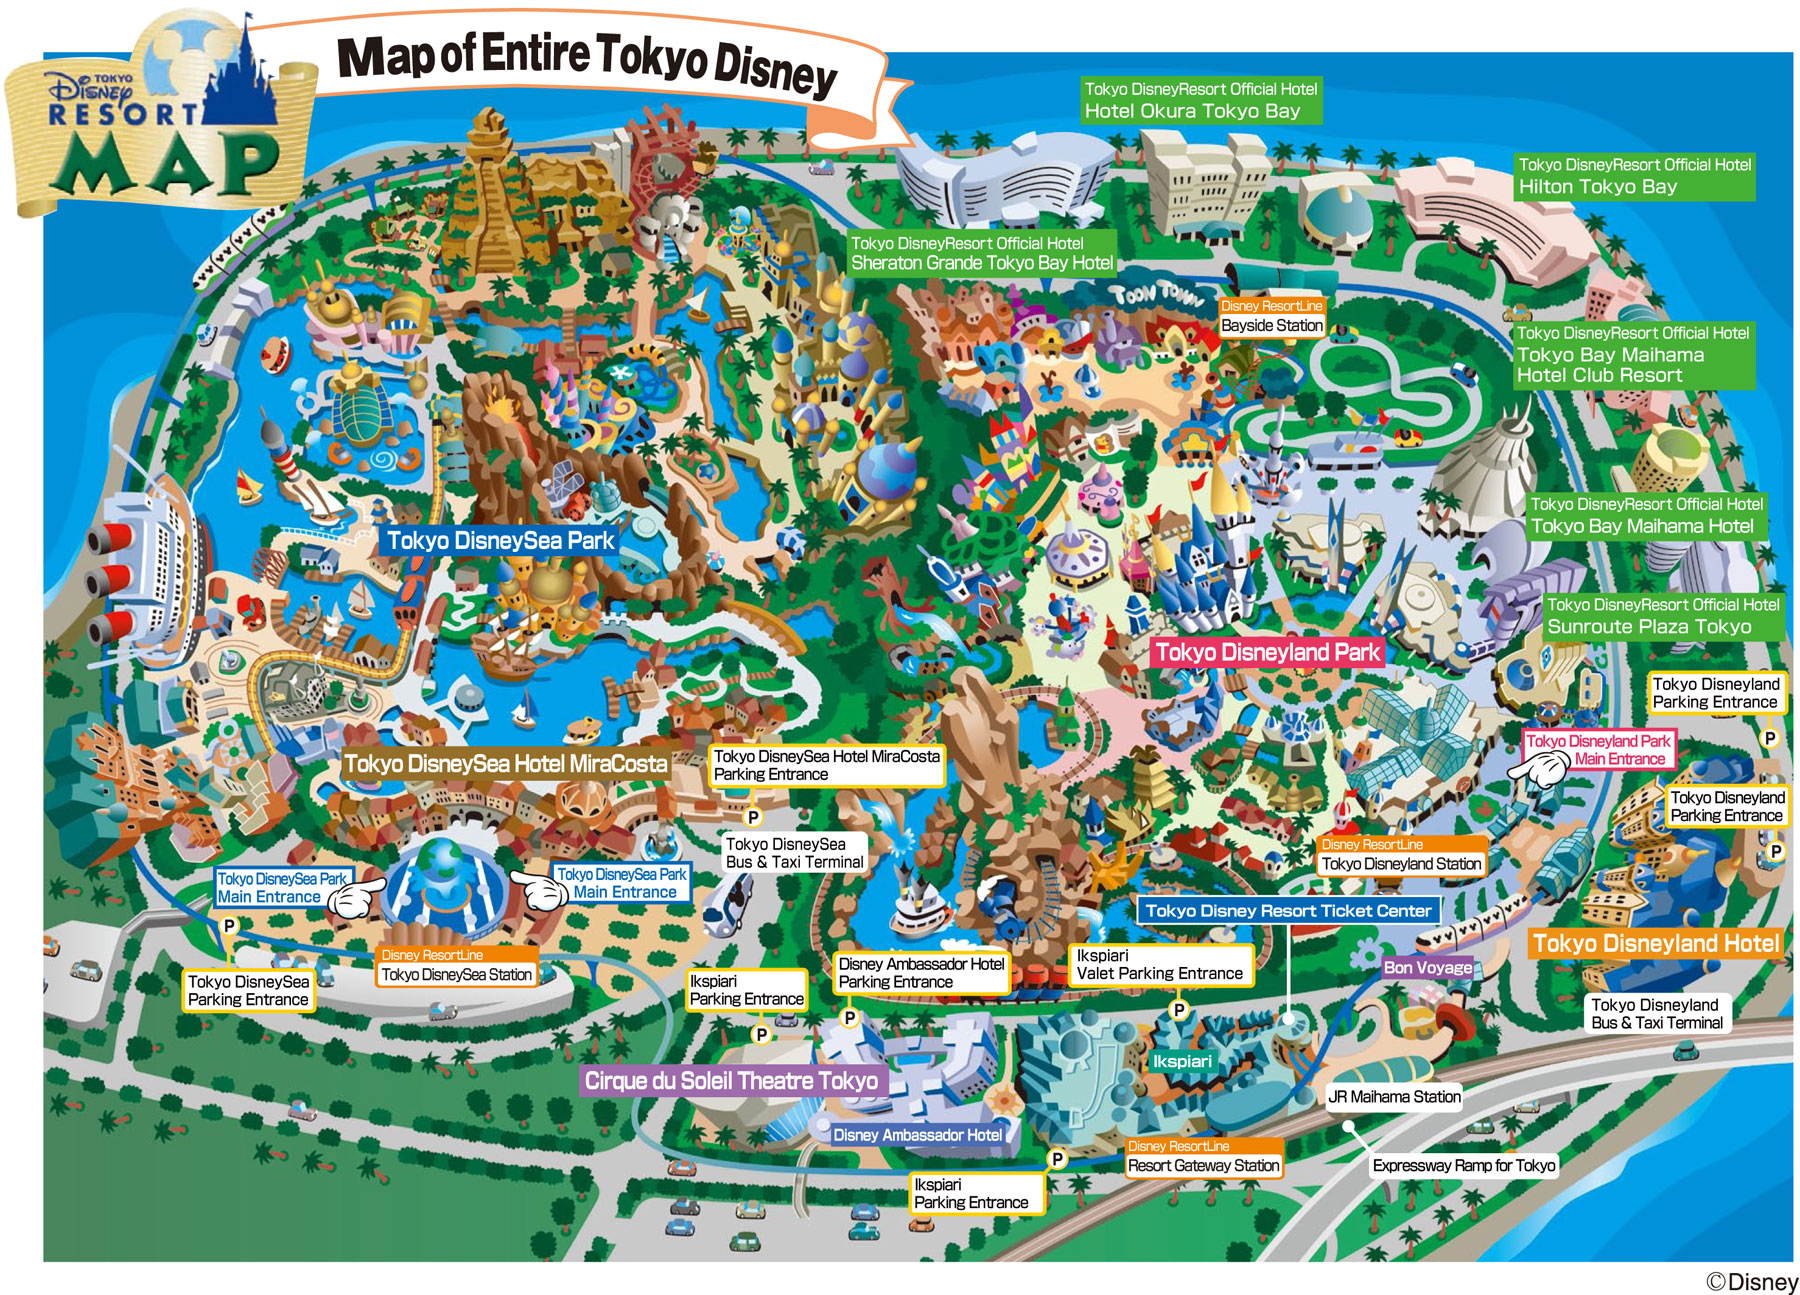 http://www.destination360.com/asia/japan/tokyo/images/s/map-of-disneyland.jpg